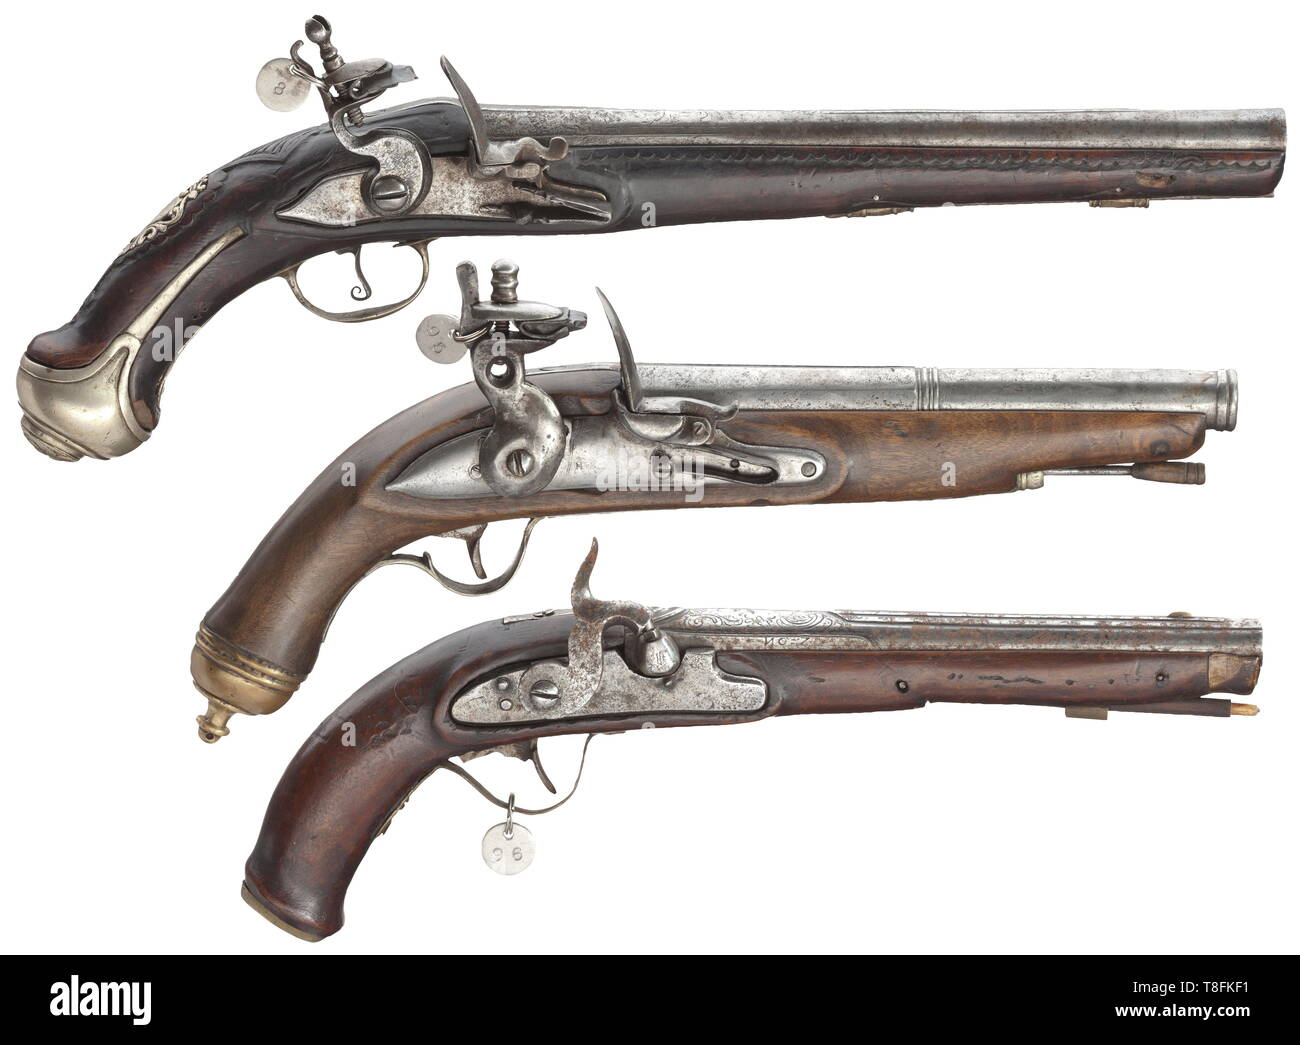 Two Guns Cut Out Stock Images & Pictures - Alamy